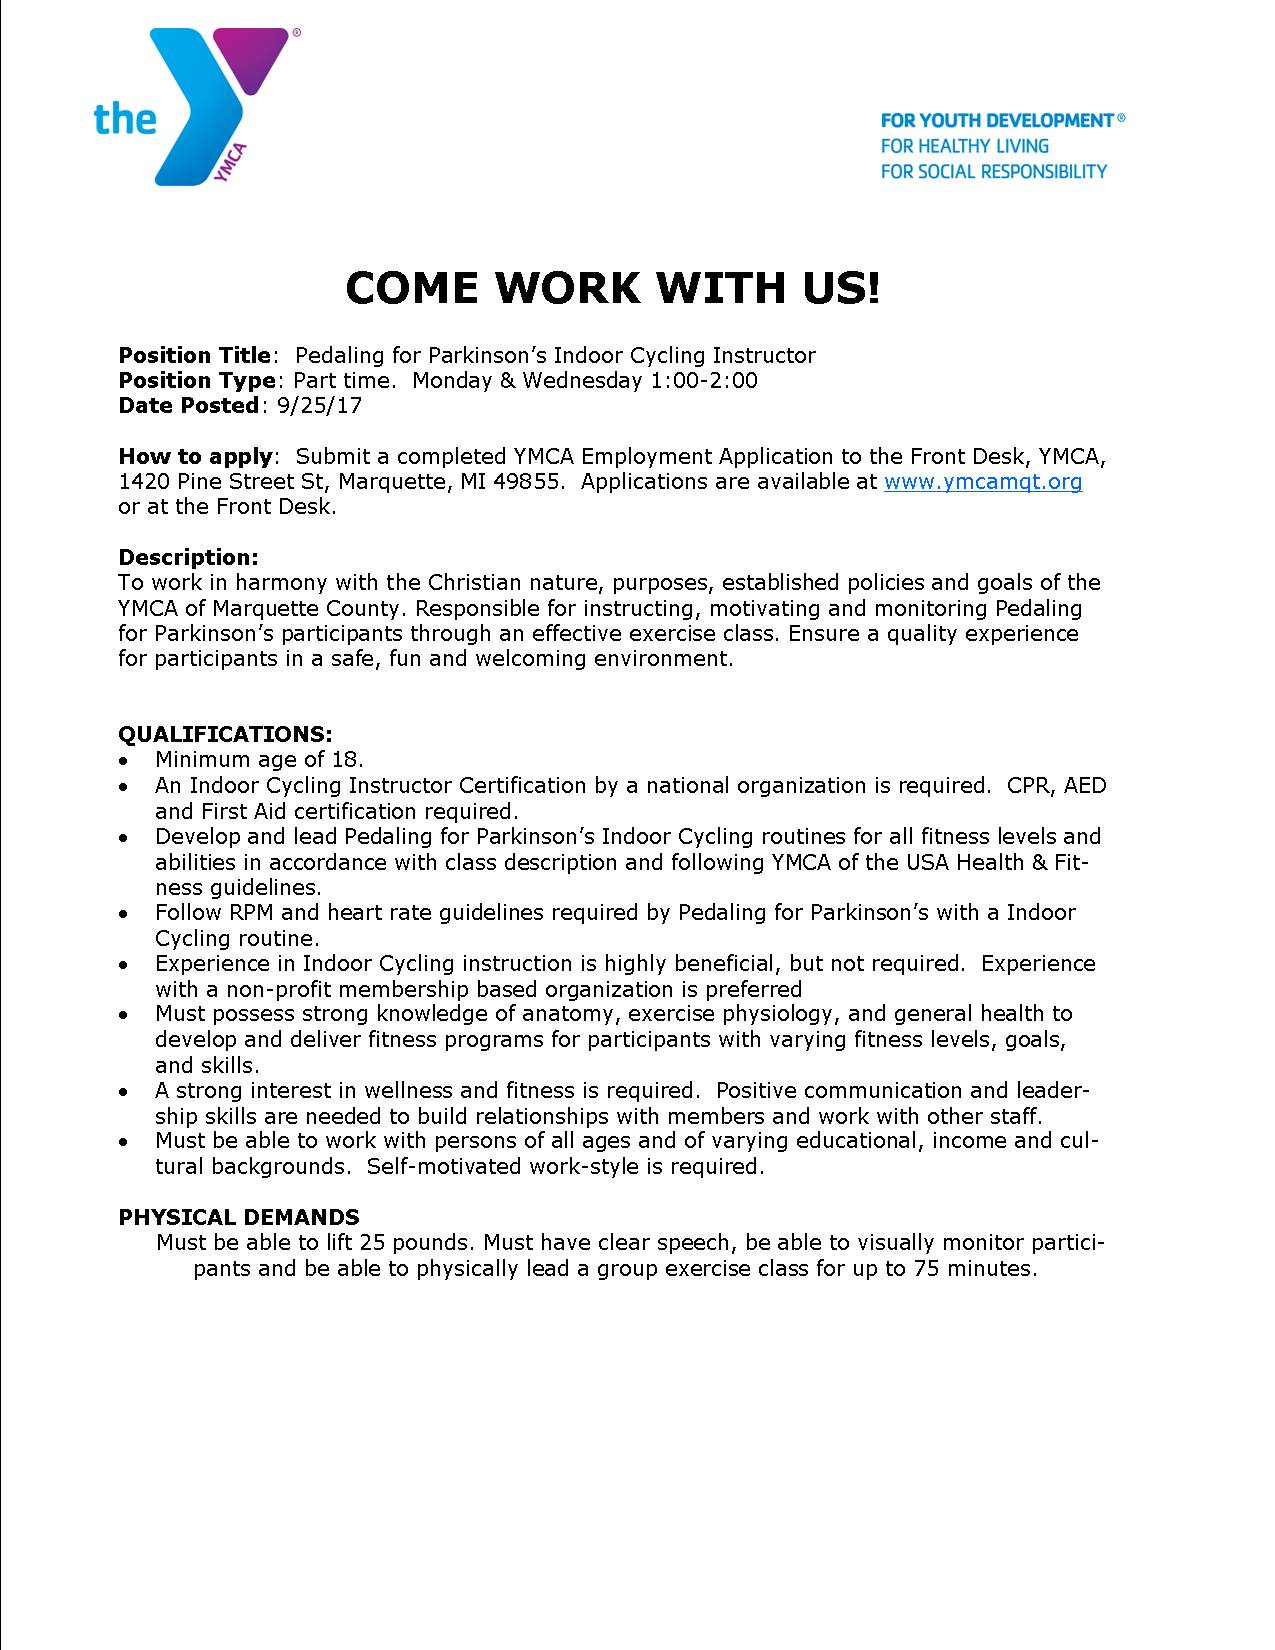 YMCA of Marquette County - Current Opportunities